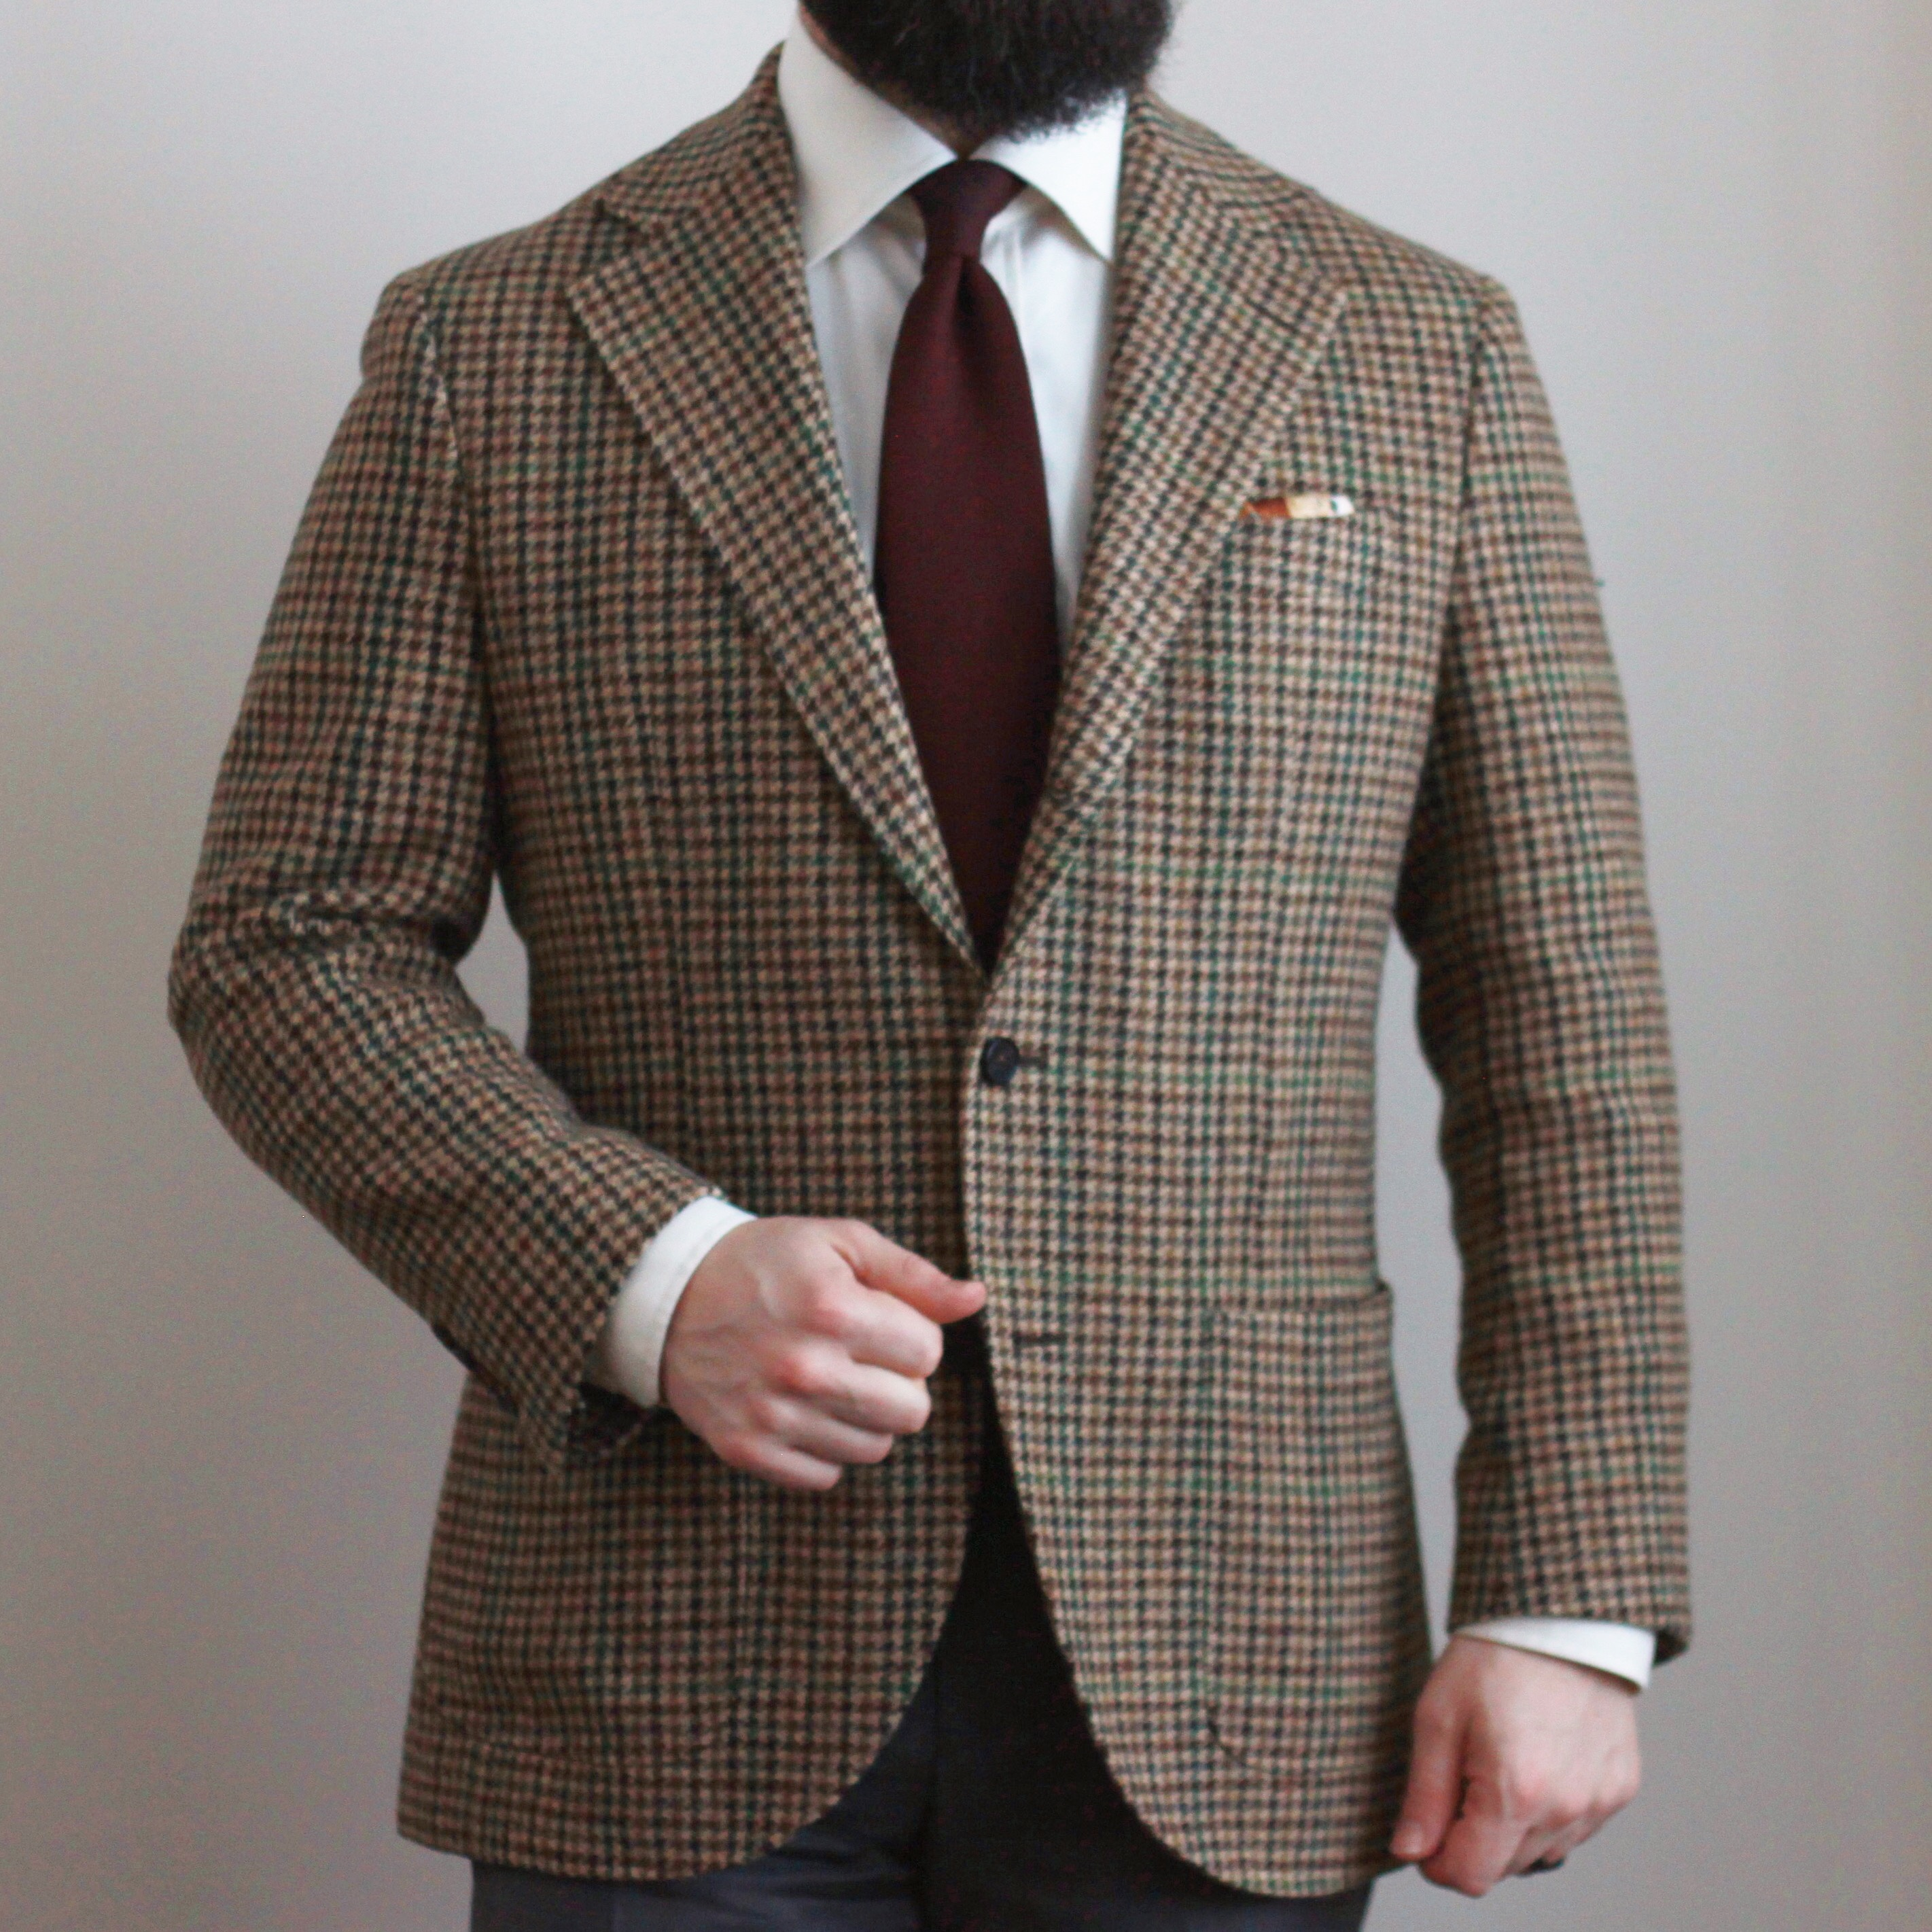 gunclub check, tweed, odd jacket, sport coat, navy grenadine, ecru shirt, Spier & Mackay neapolitan